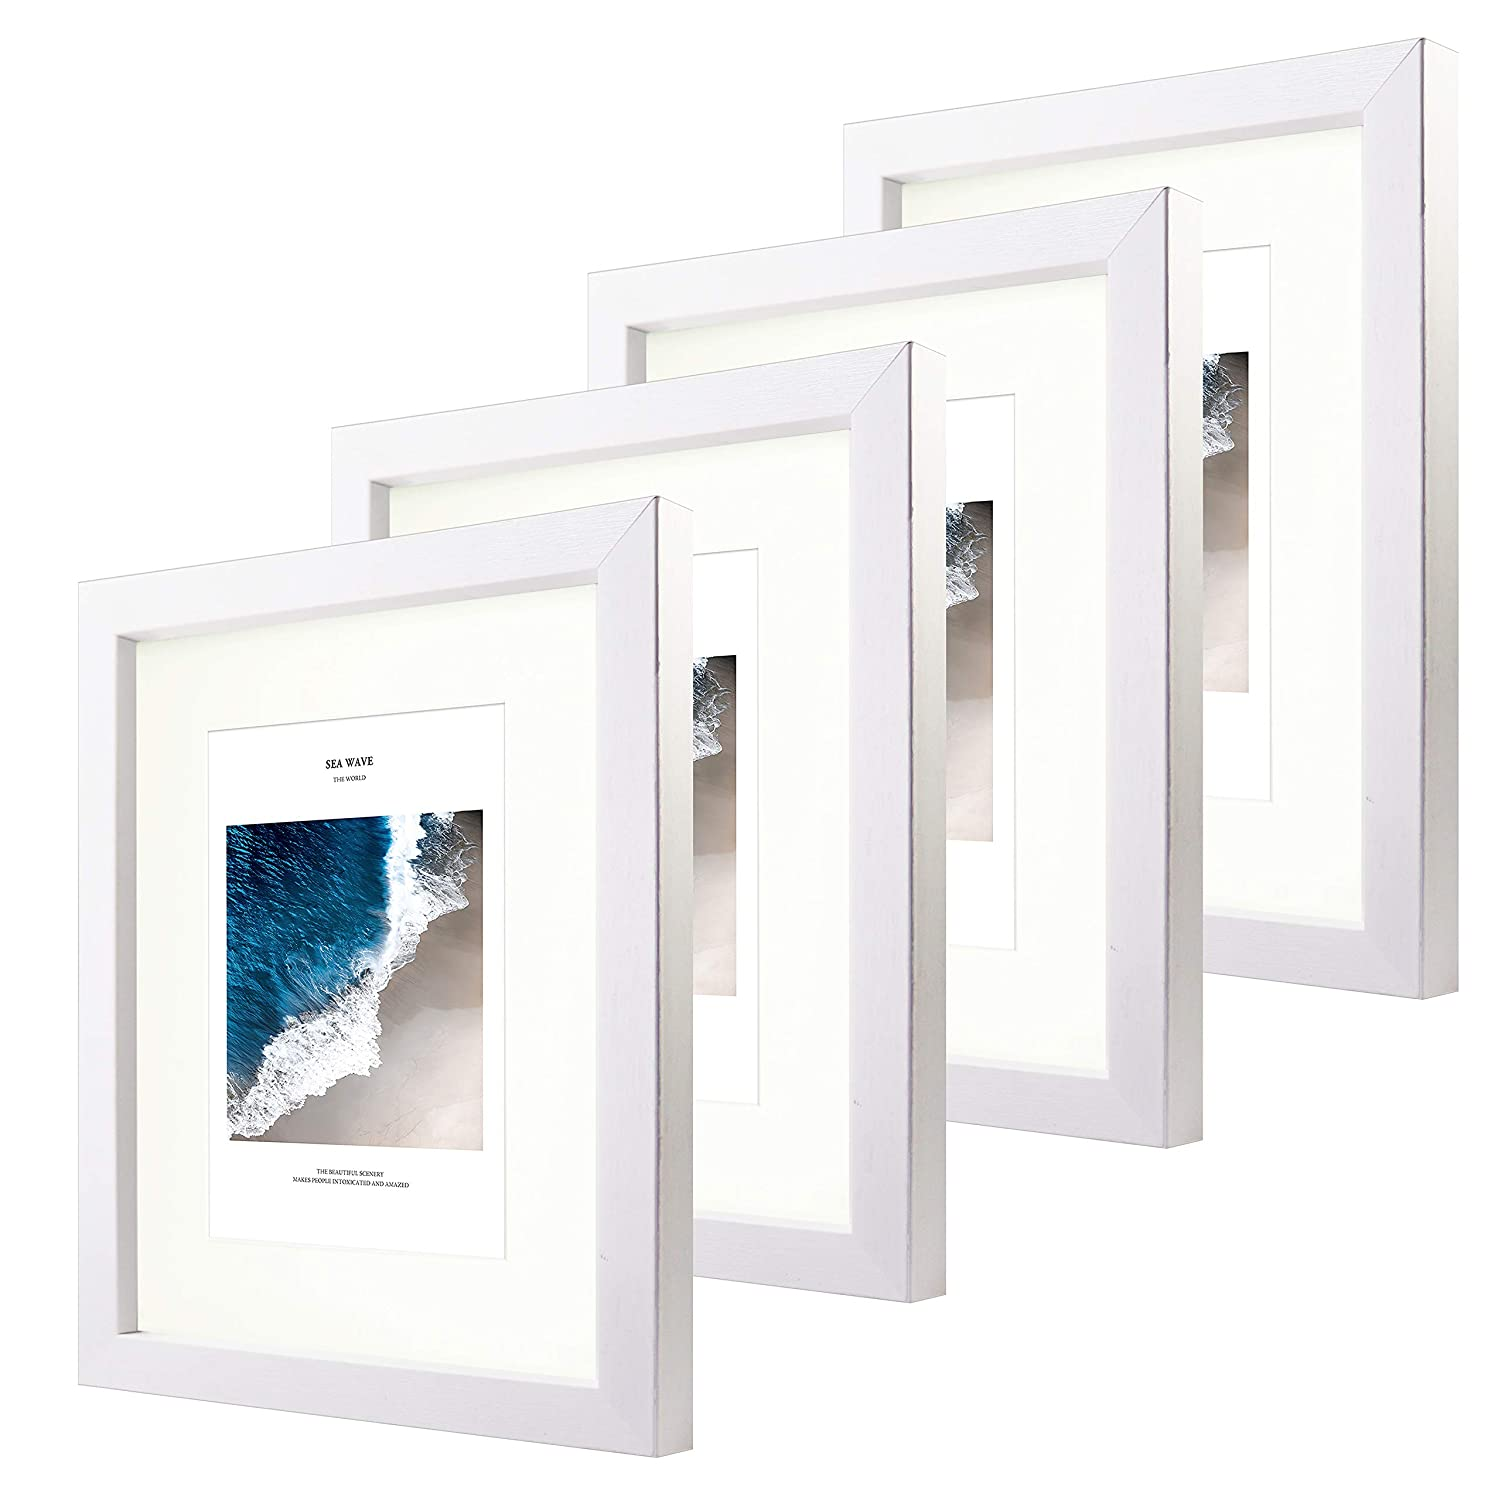 CoFun Art 8x10 Black and White Matted Picture Frames Glass Front for Pictures 5x7 with Mat or 8x10 Without Mat for Wall & Table top 4 Pack (Black)